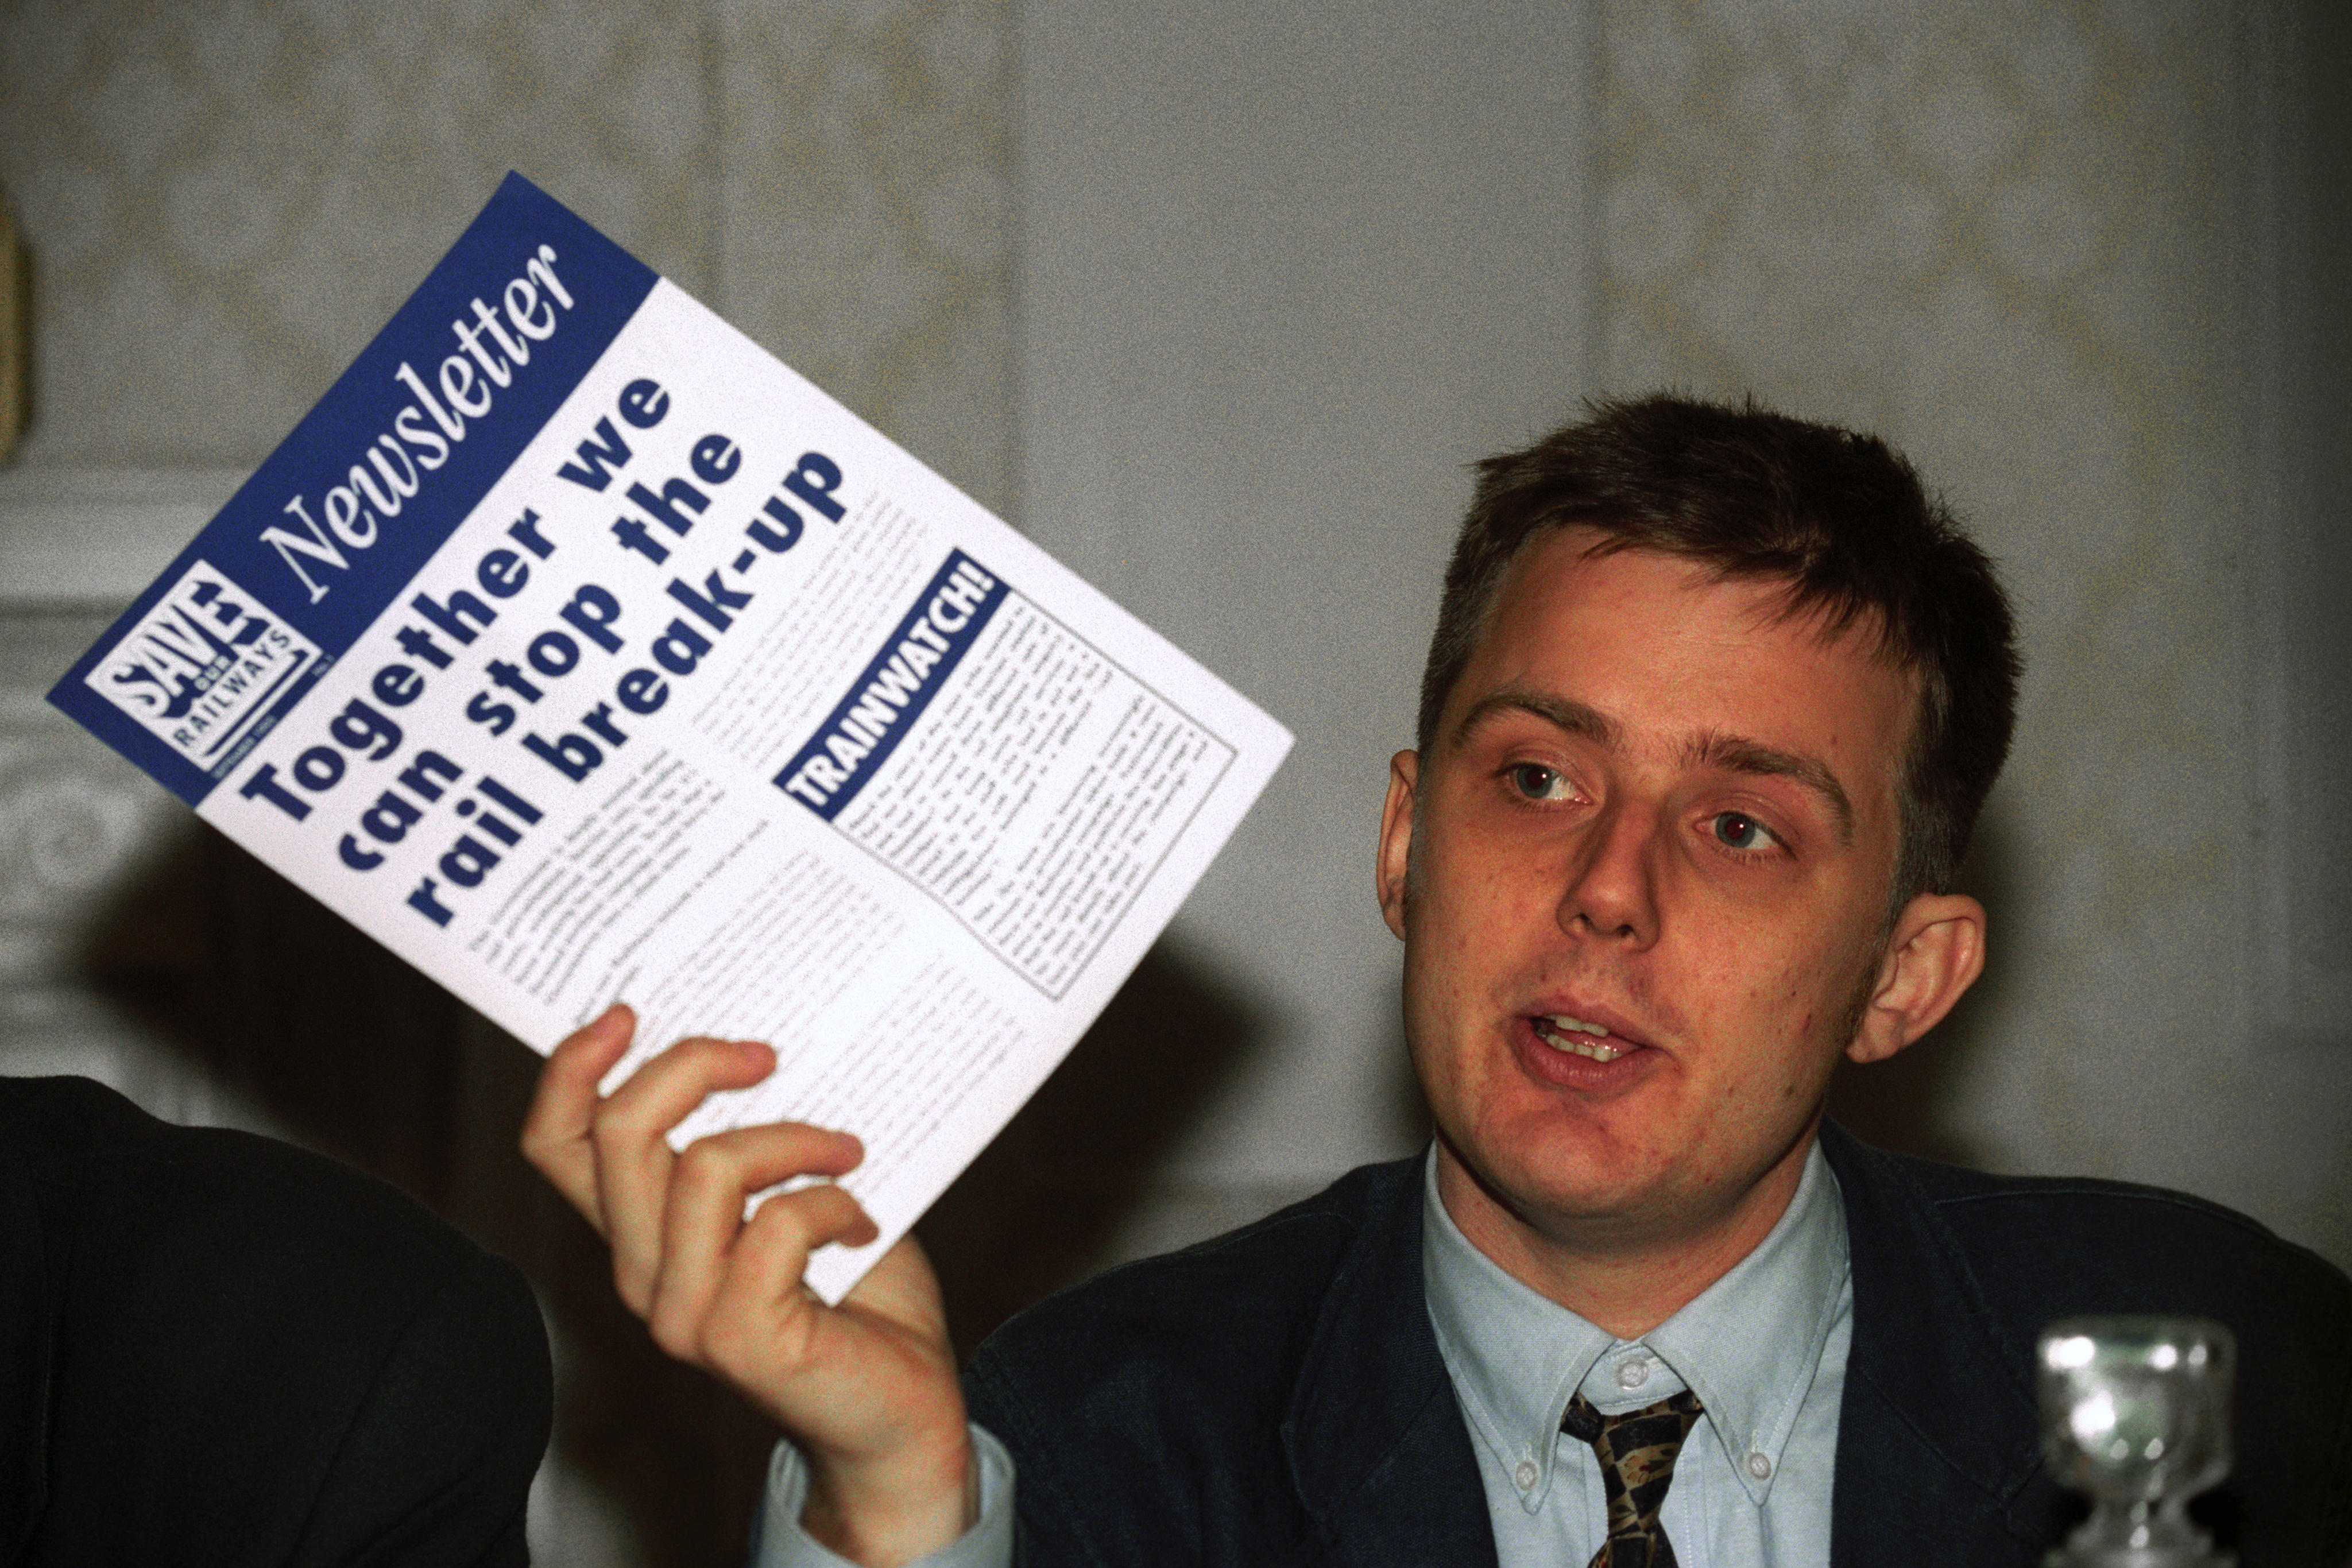 Jonathon Bray, the co-ordinator of the pressure group Save Our Railways, at a London news conference where he announced a legal challenge in a bid to overturn cuts to train services under privatisation.